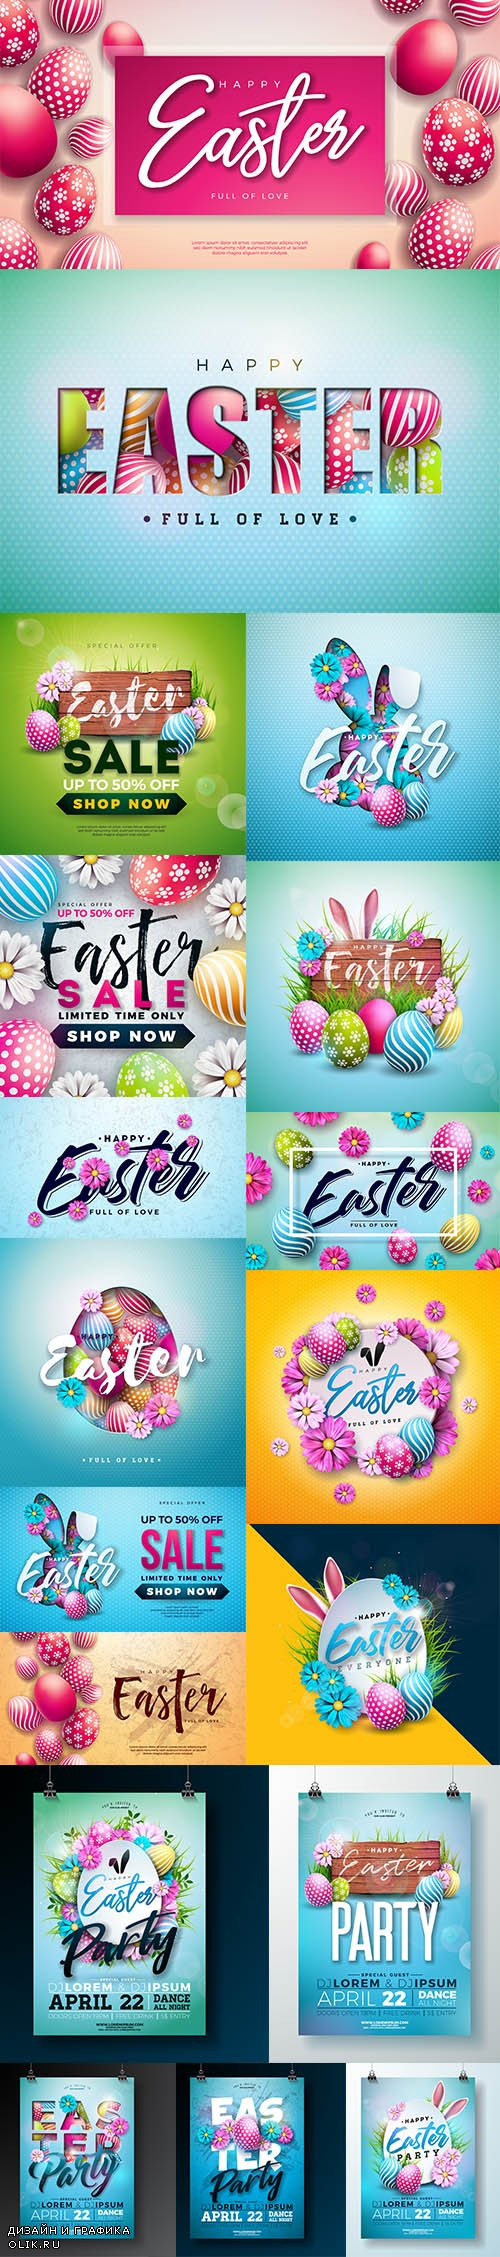 Happy Easter Holiday Premium Illustrations and Flyer Set 2